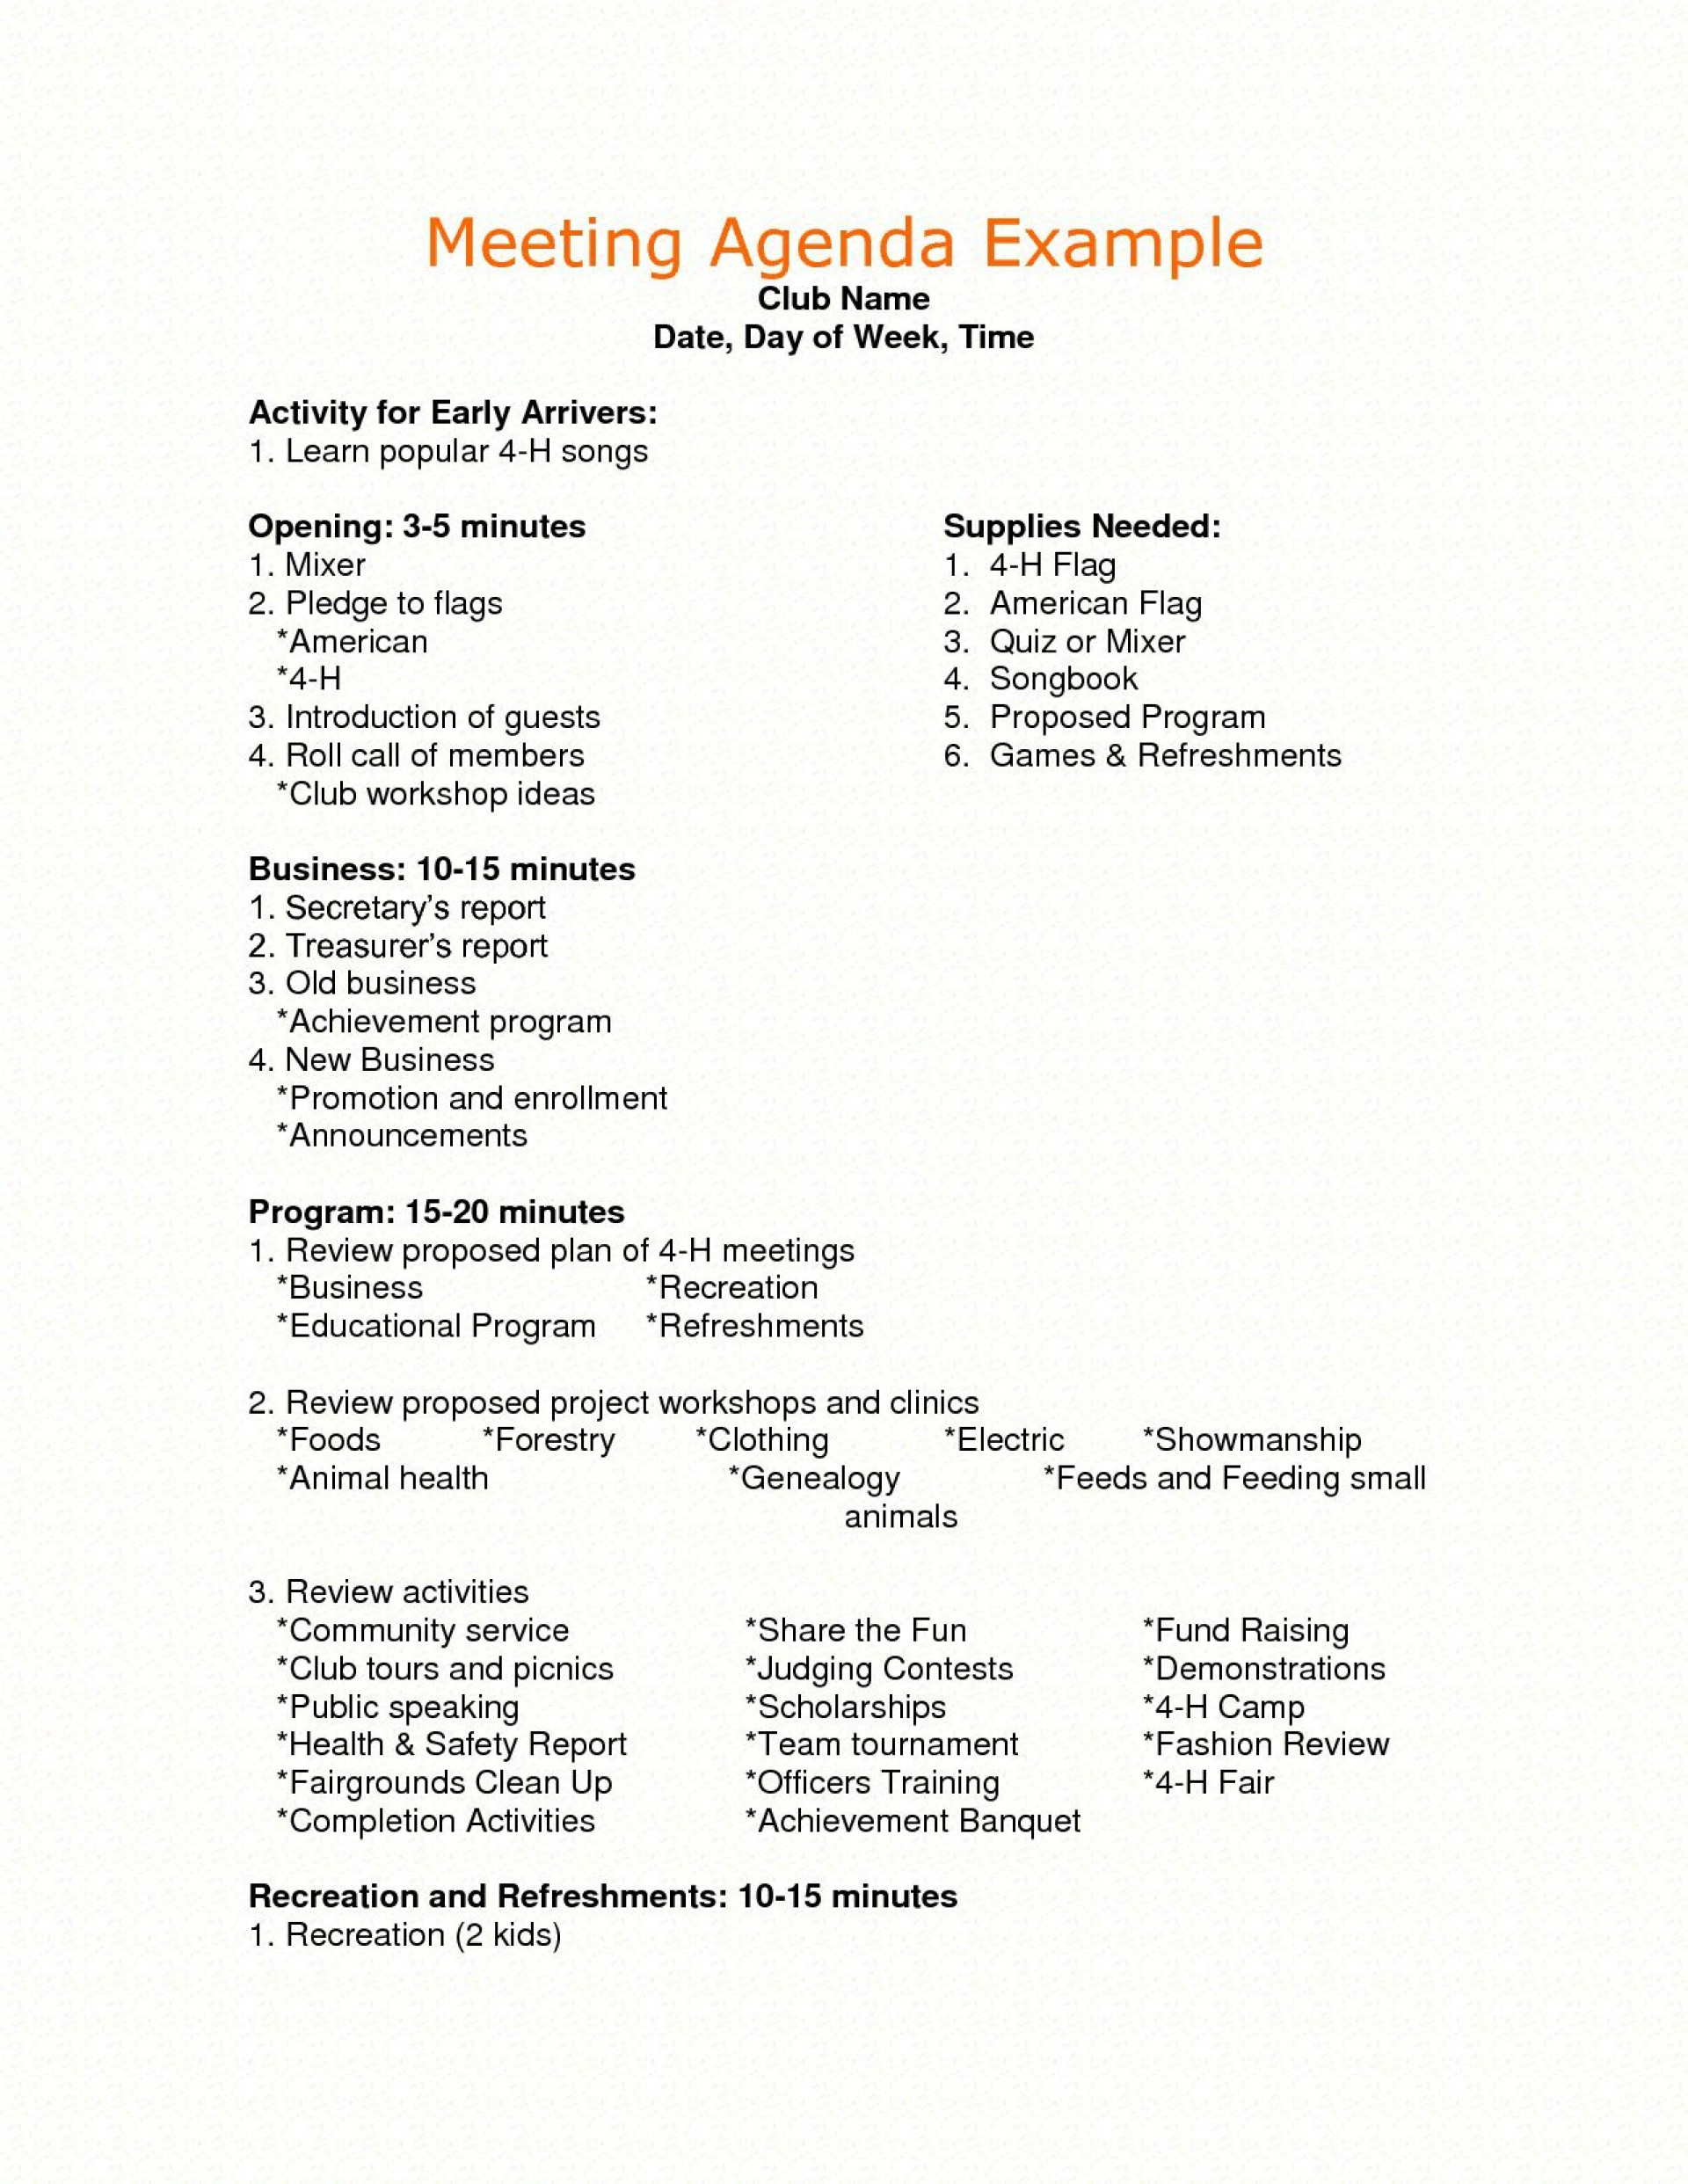 Sample Meeting Agenda Template Addictionary